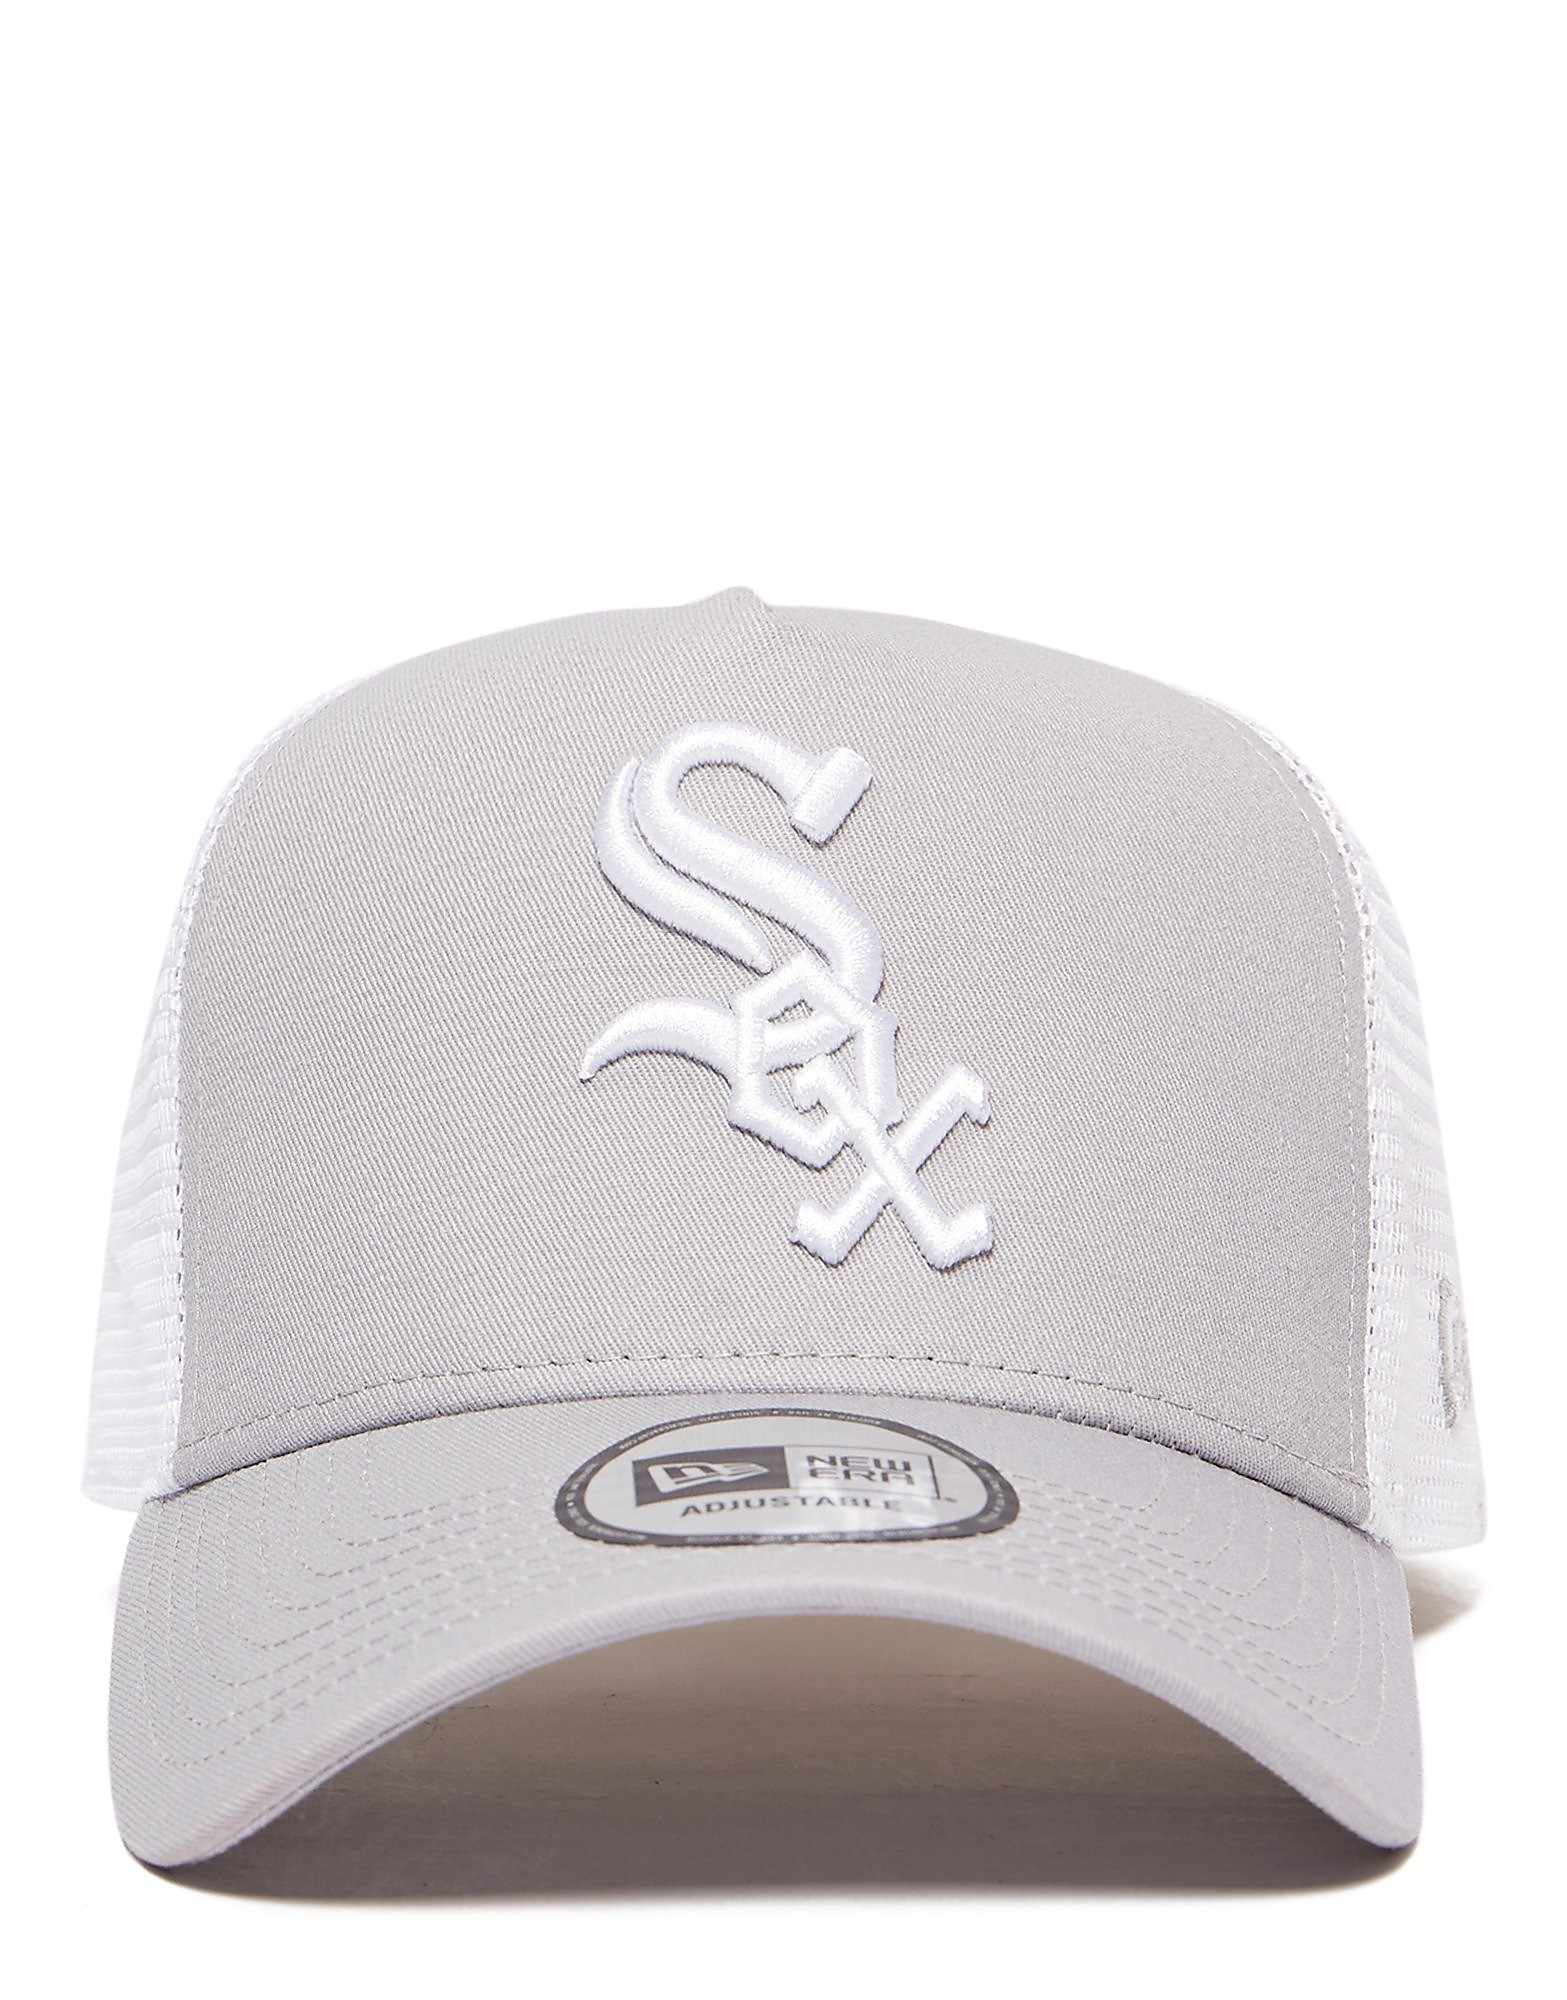 New Era MLB Chicago White Sox Trucker Cap